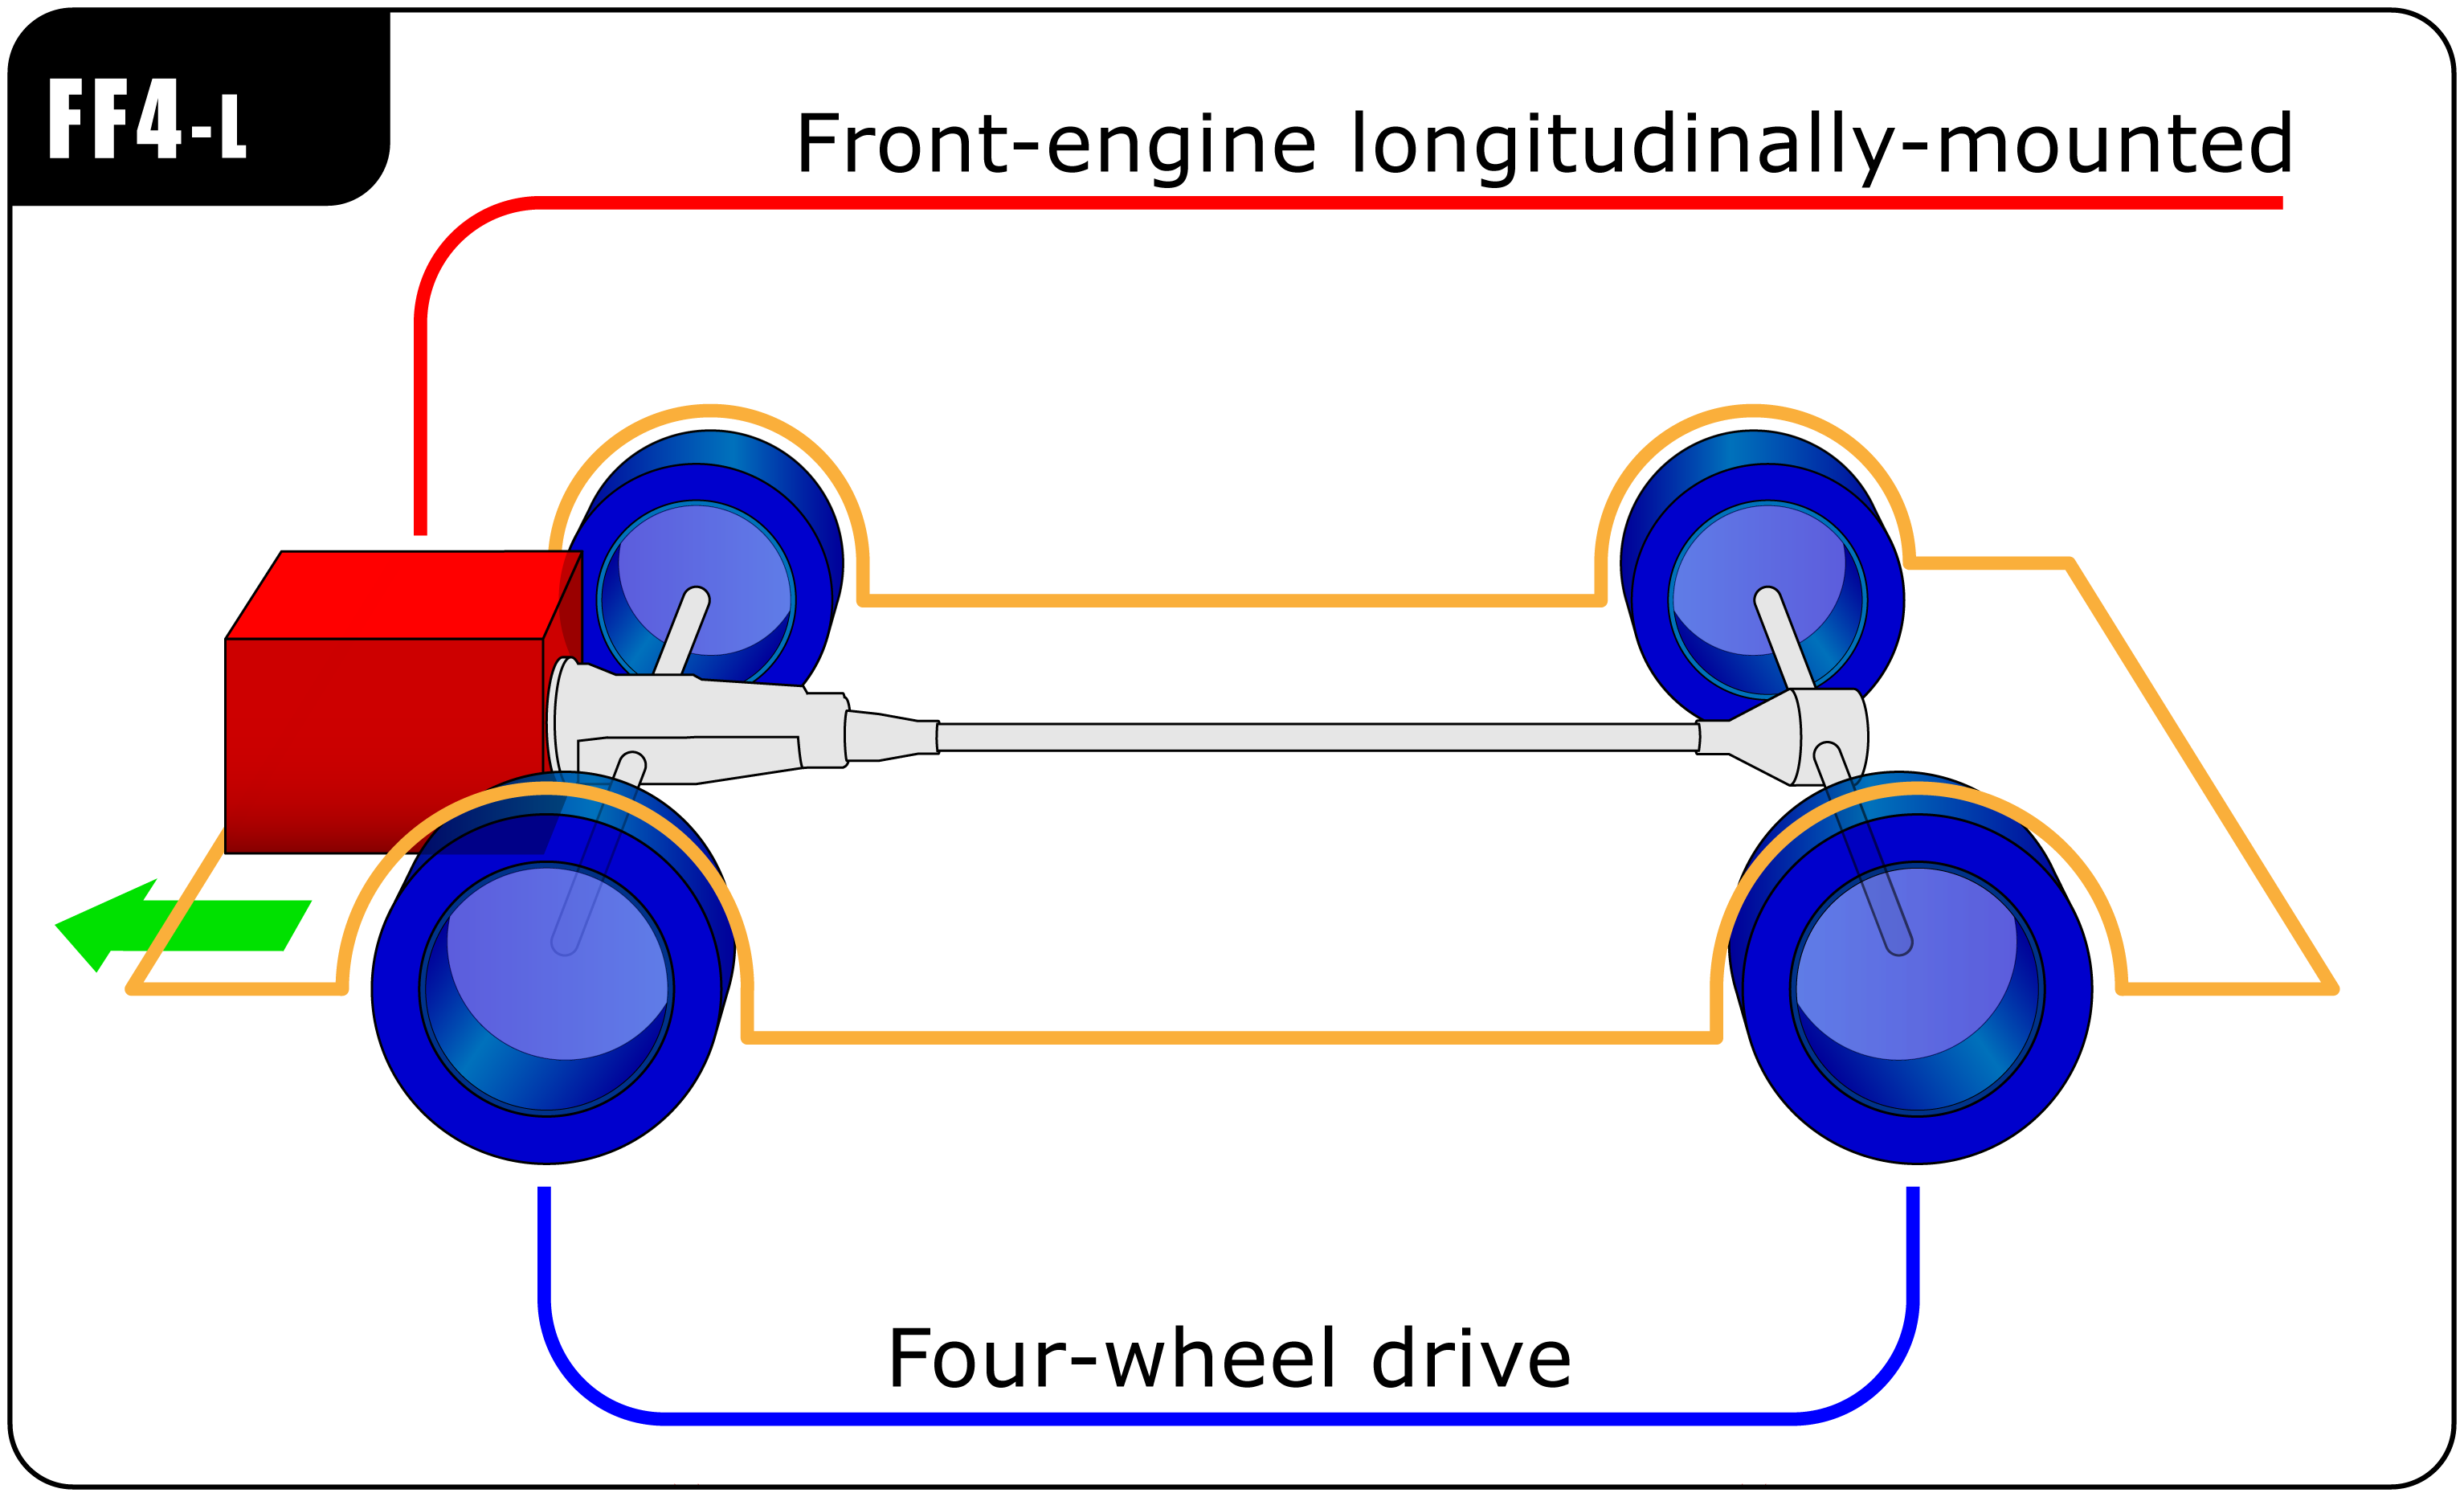 4 Wheel Drive Engine Diagram Wiring Diagrams Gmc Envoy File Automotive 09 En Wikimedia Commons Rh Org All